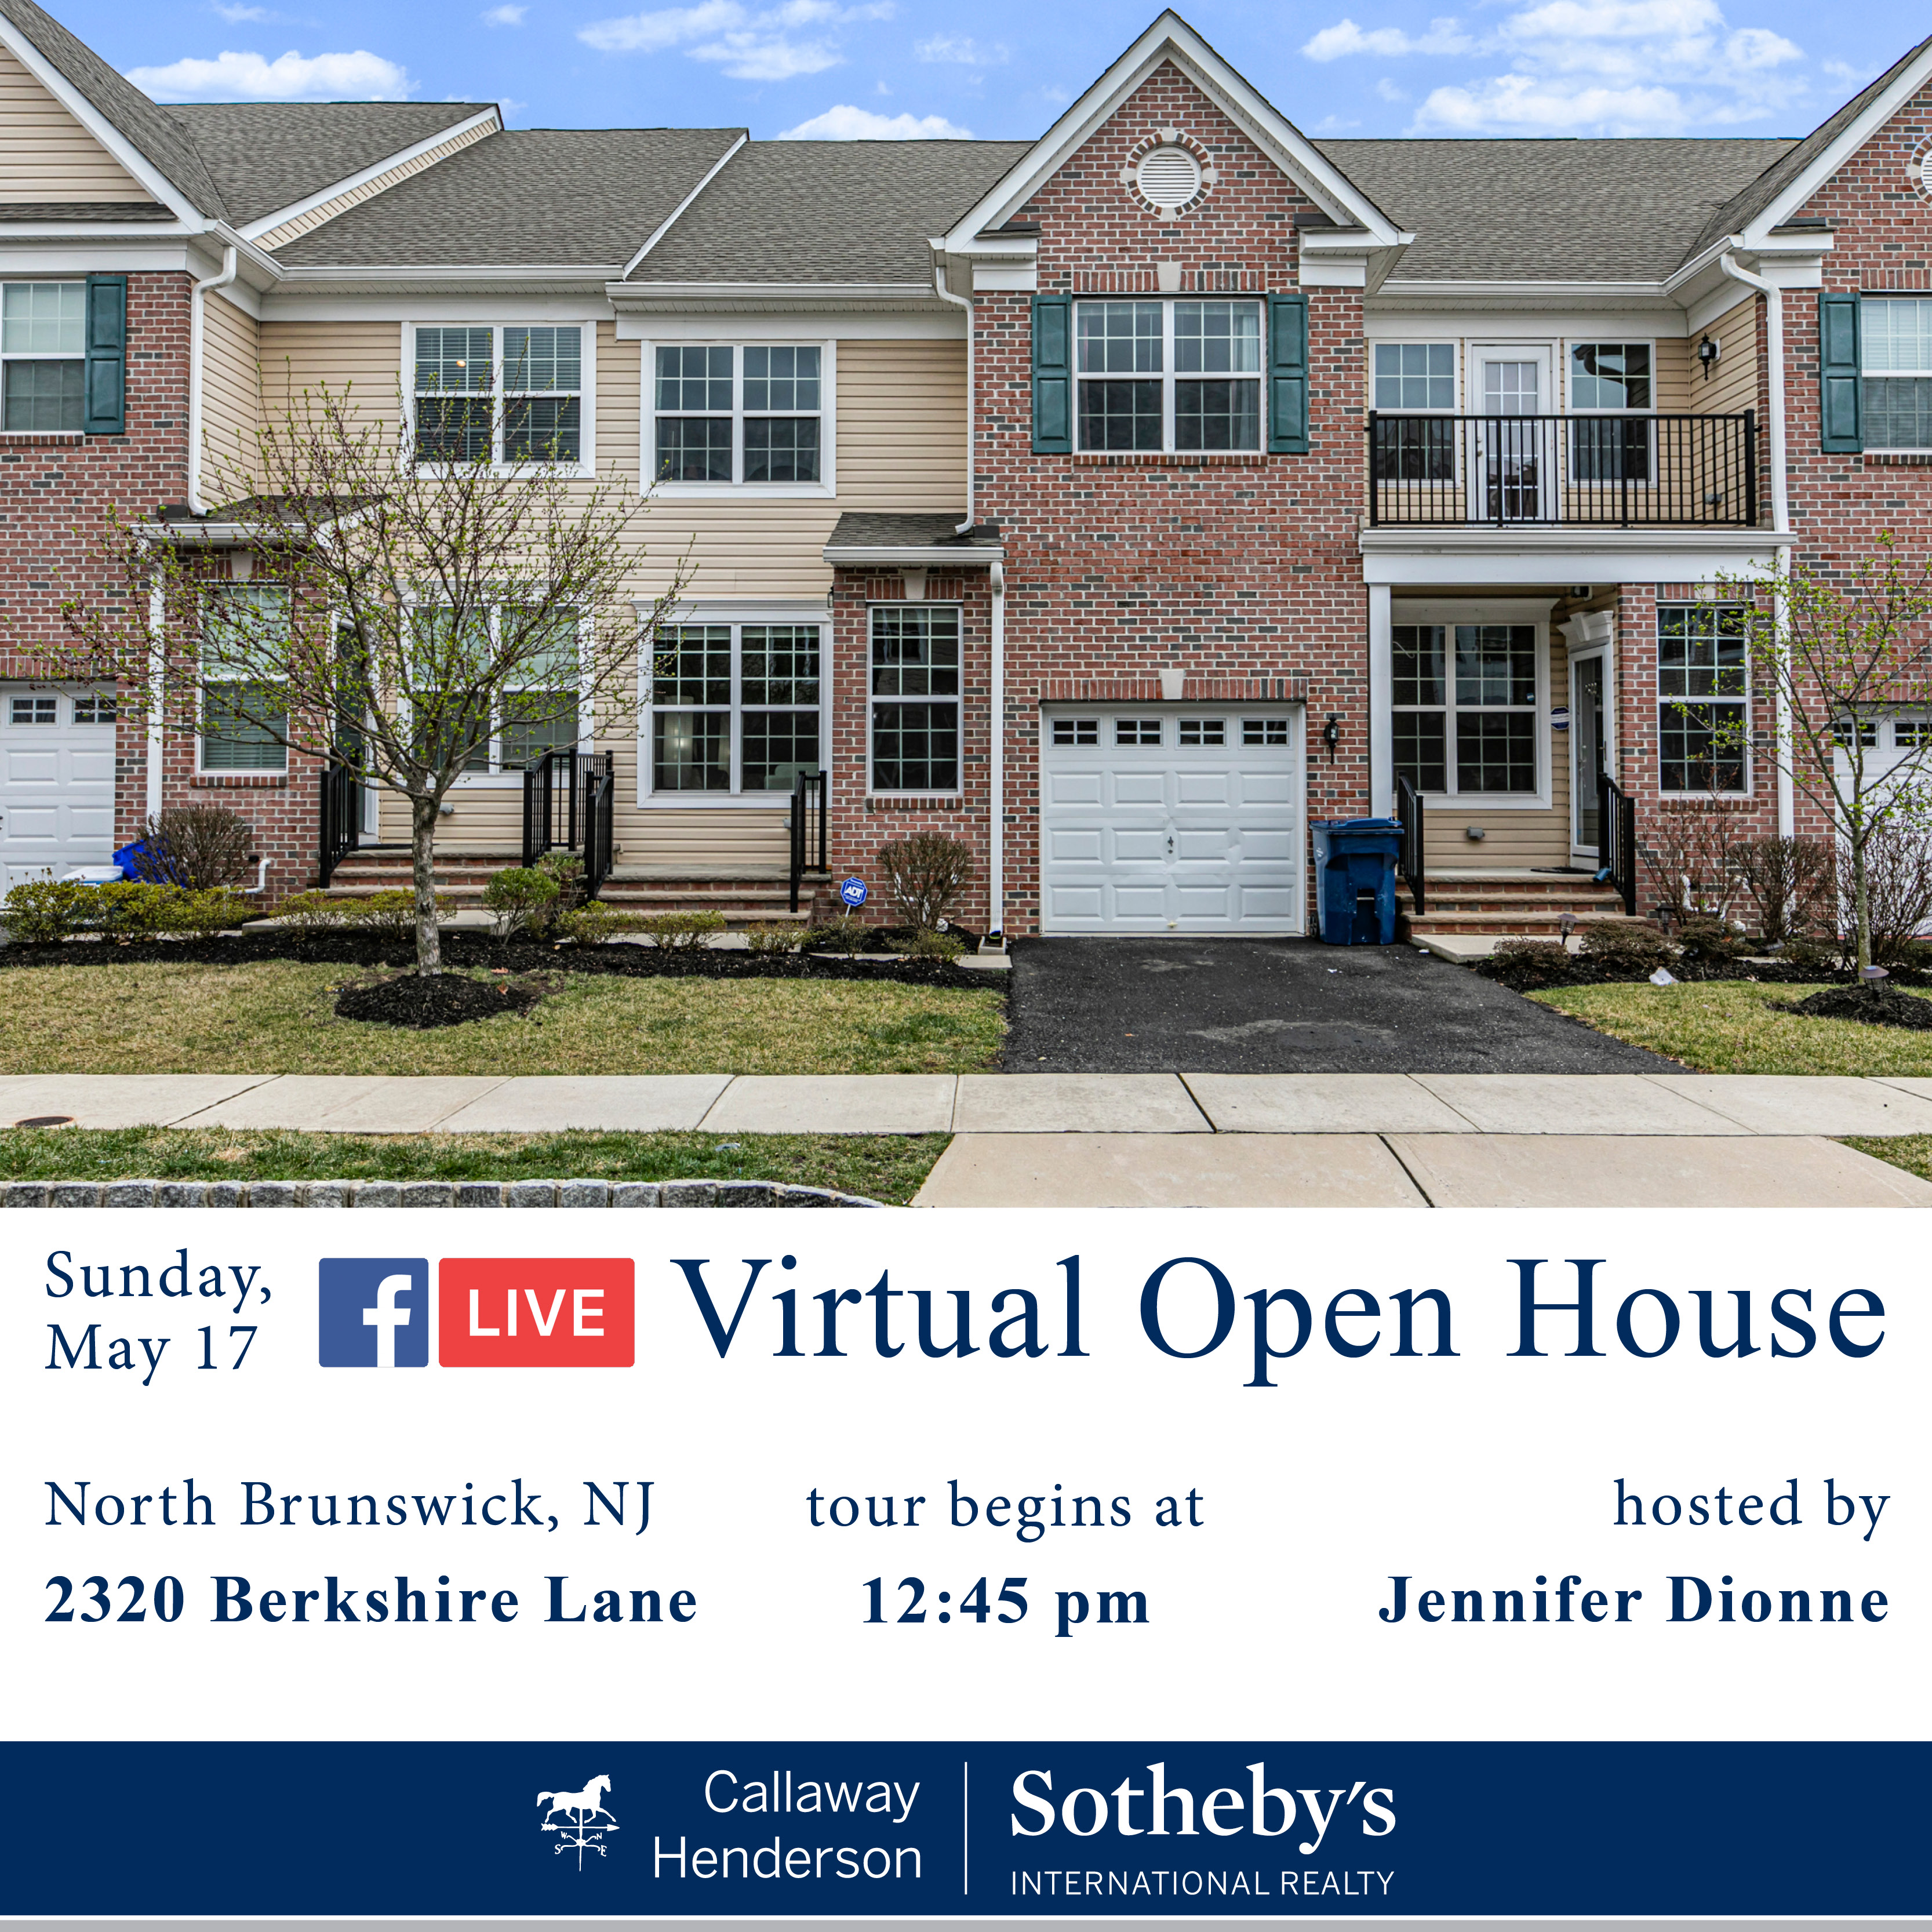 20200517 Live Virtual Open House Template-Berkshire Lane 2320 v2e